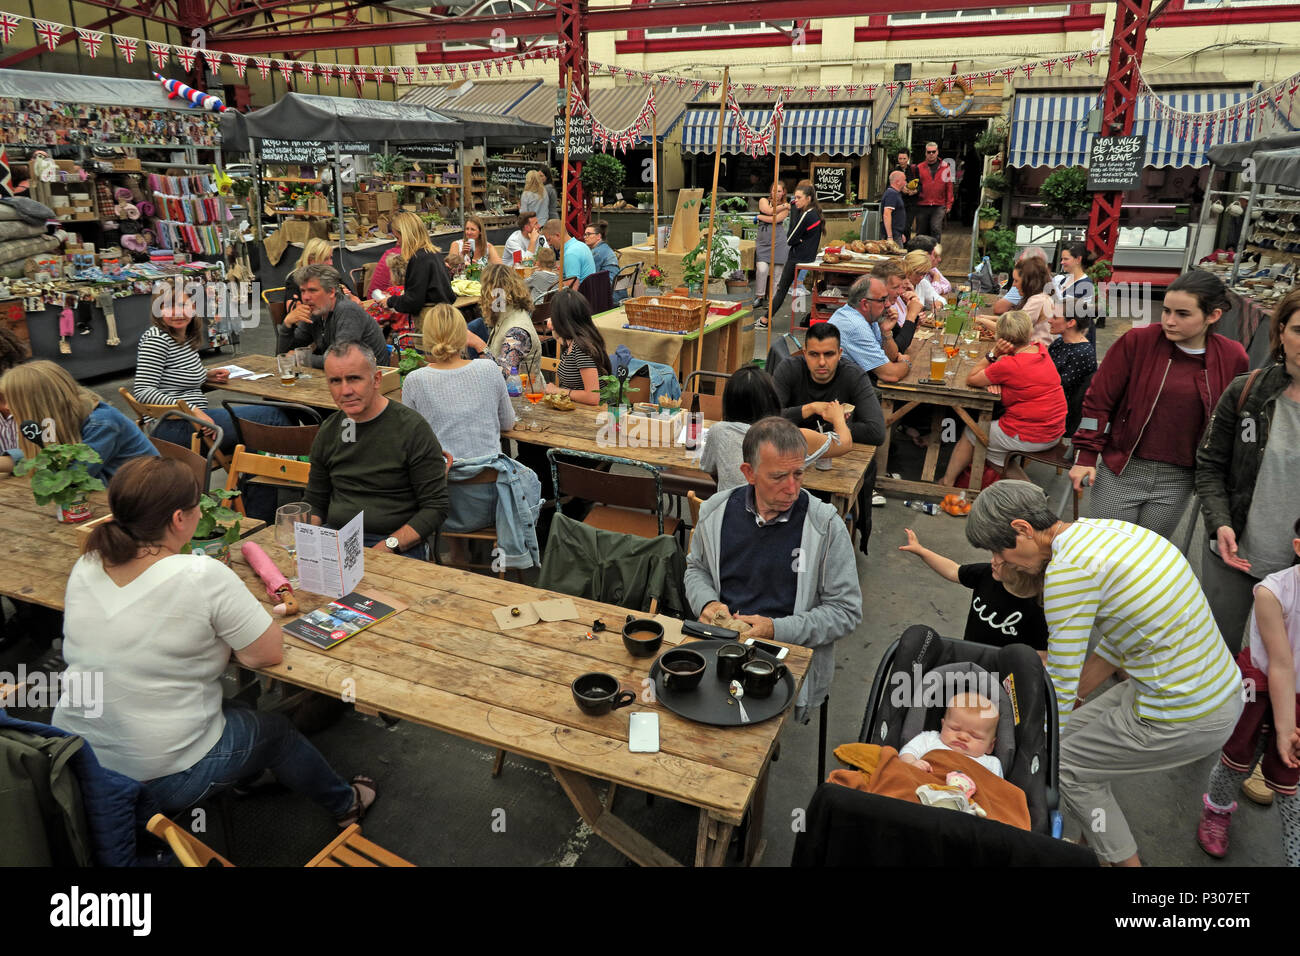 Altrincham successful retail town market (similar to Borough Market), Trafford Council, Greater Manchester, North West England, UK - Stock Image